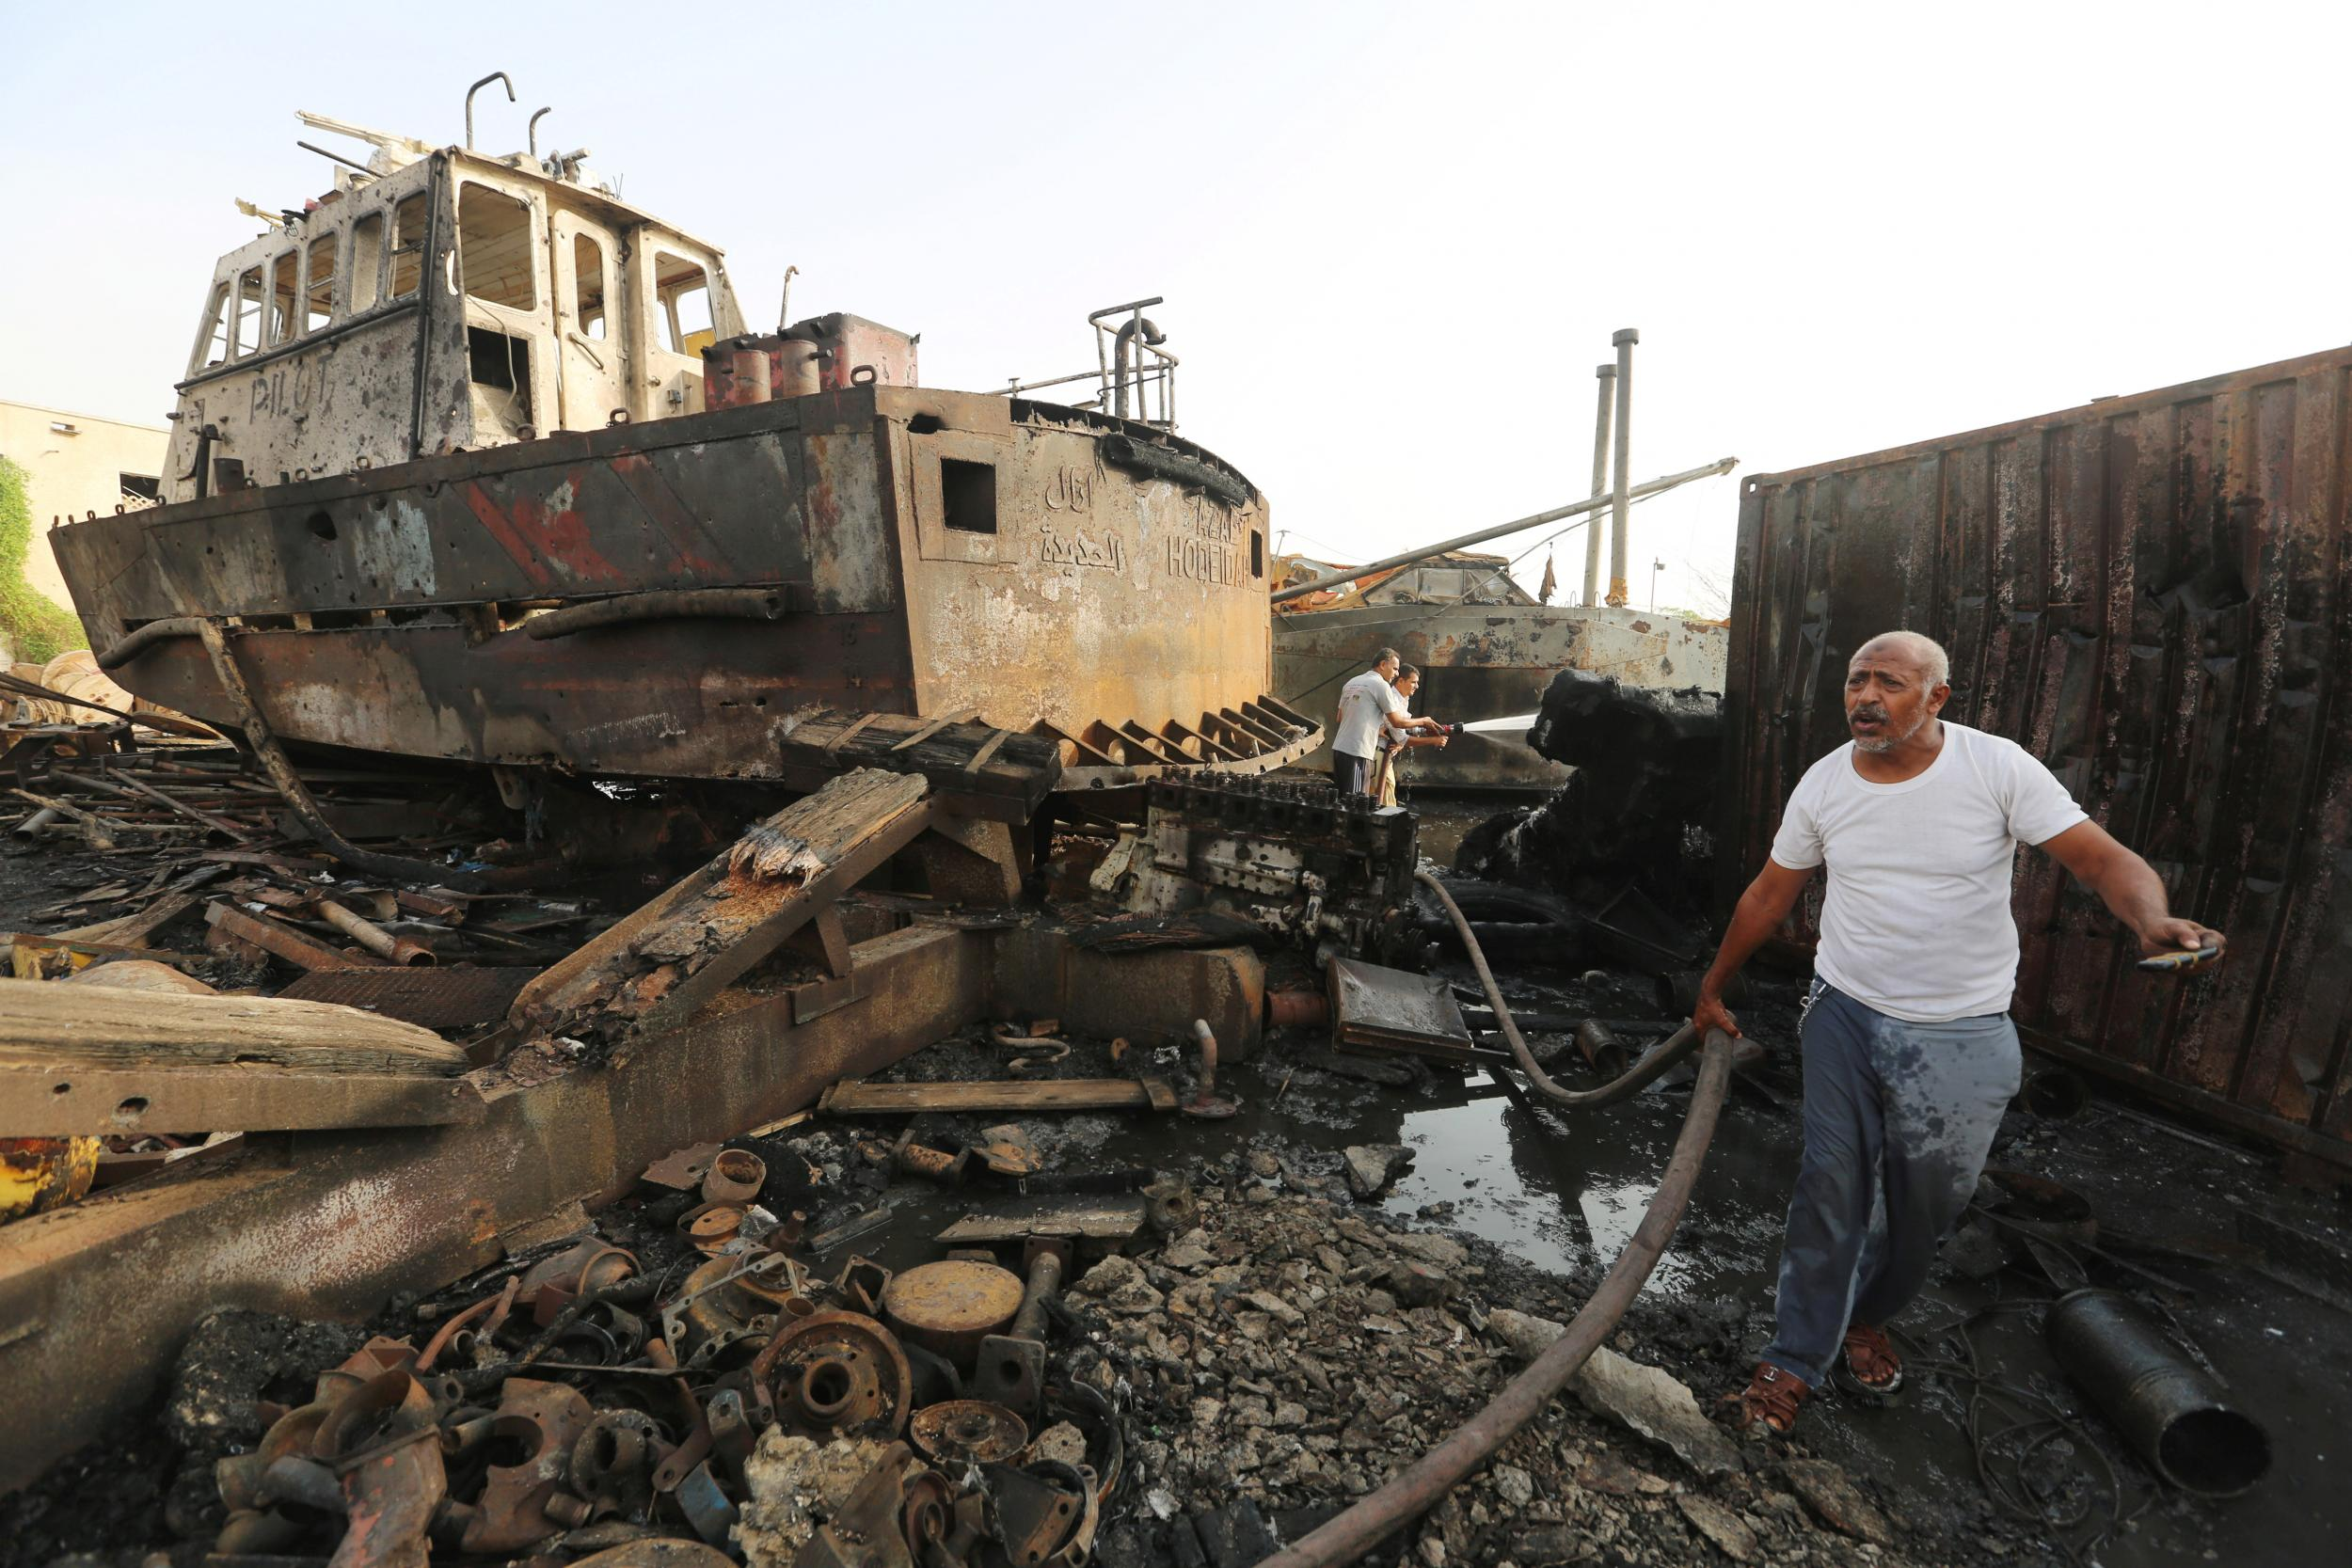 Battle for Hodeidah: Why is the Yemeni city so important and what will the fighting mean for civilians?